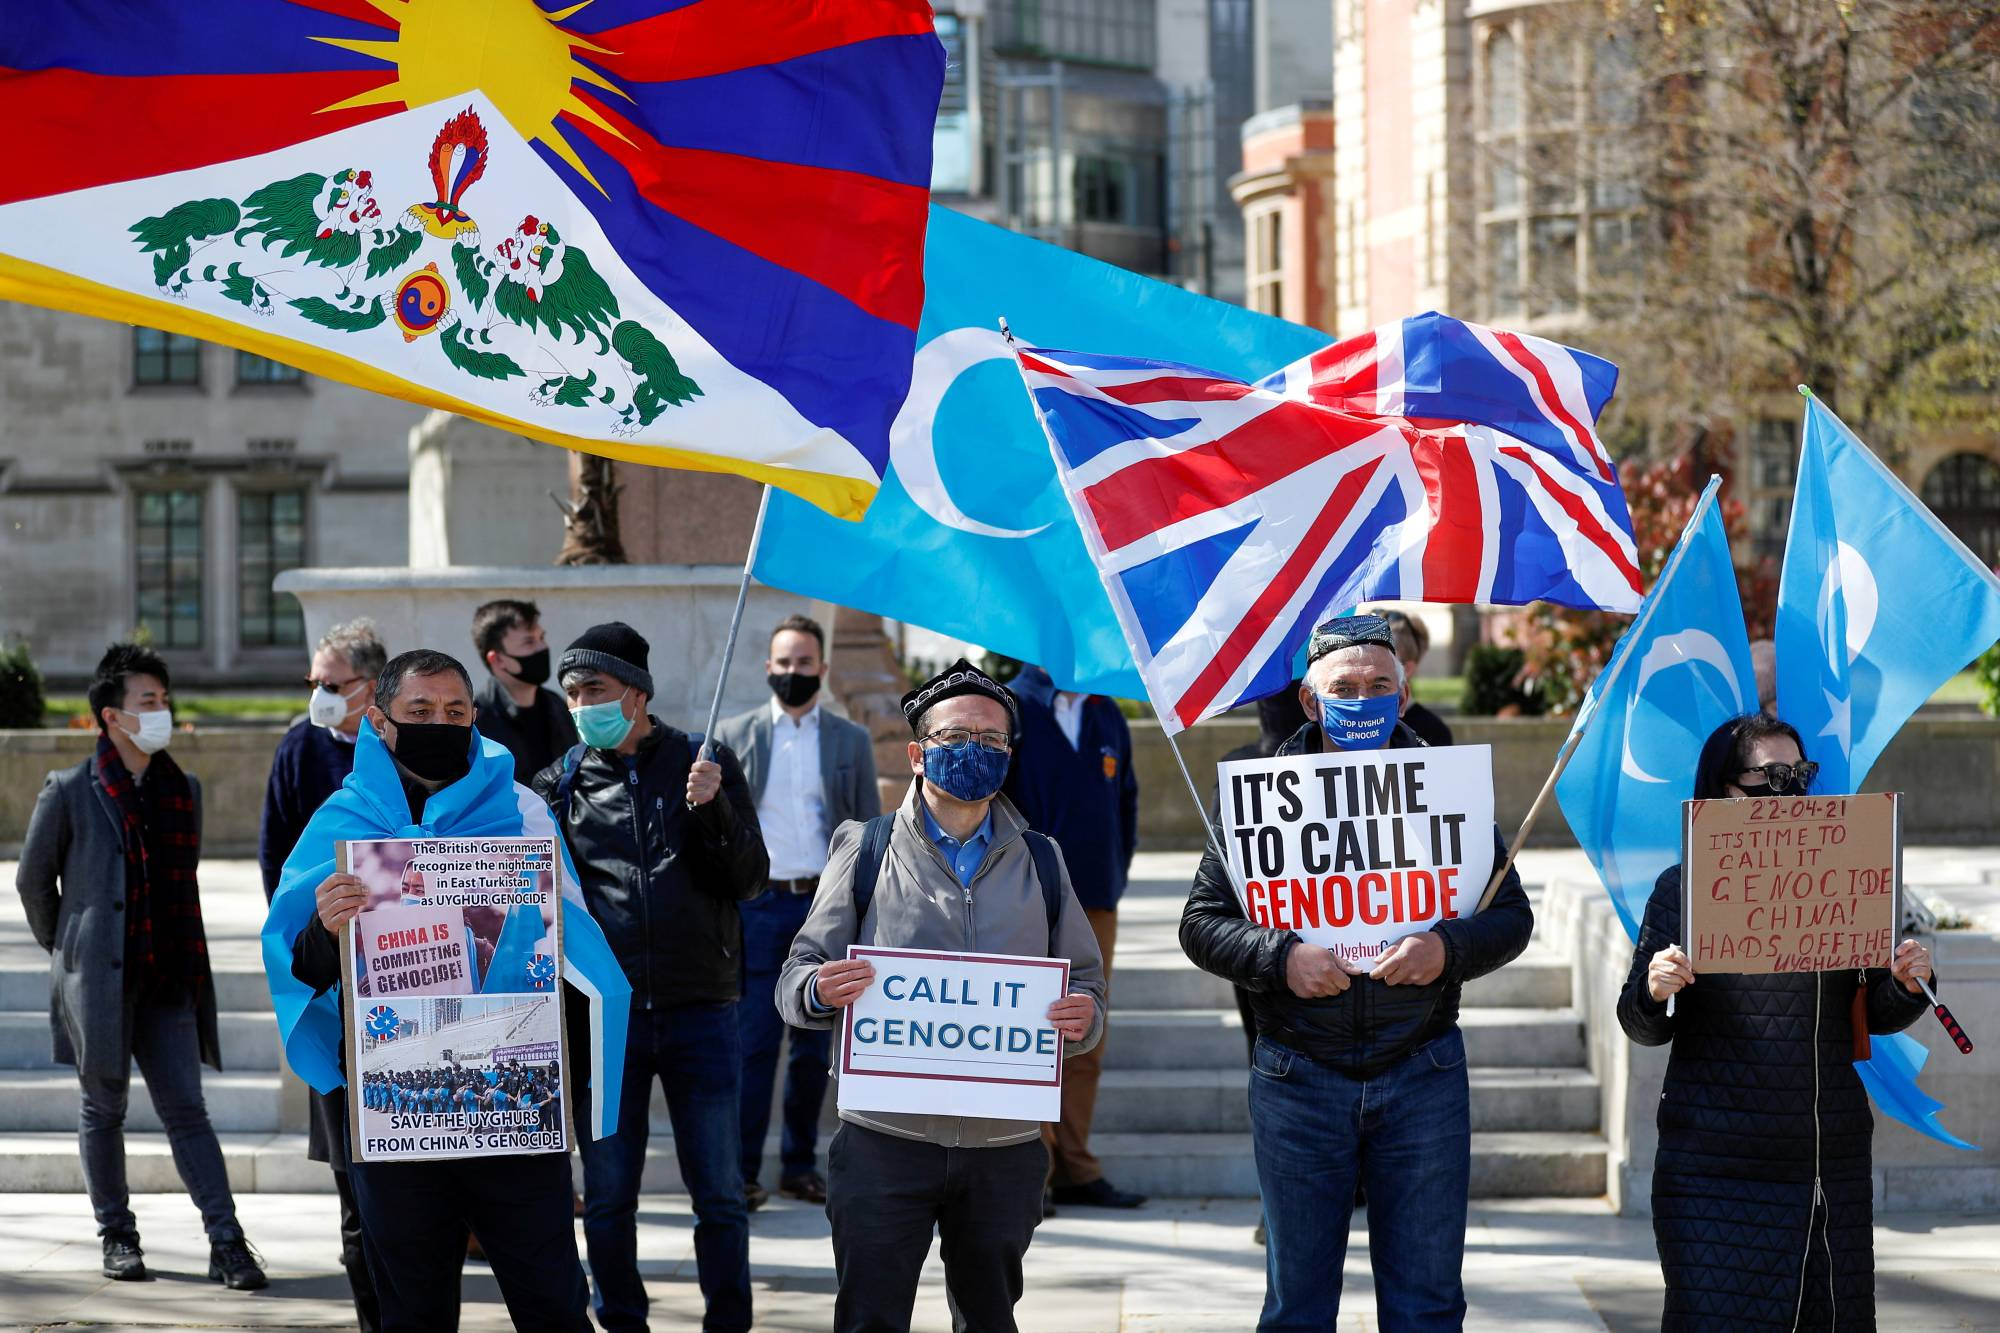 Demonstrators stage a protest in London in April against China's treatment of Uyghurs. | REUTERS